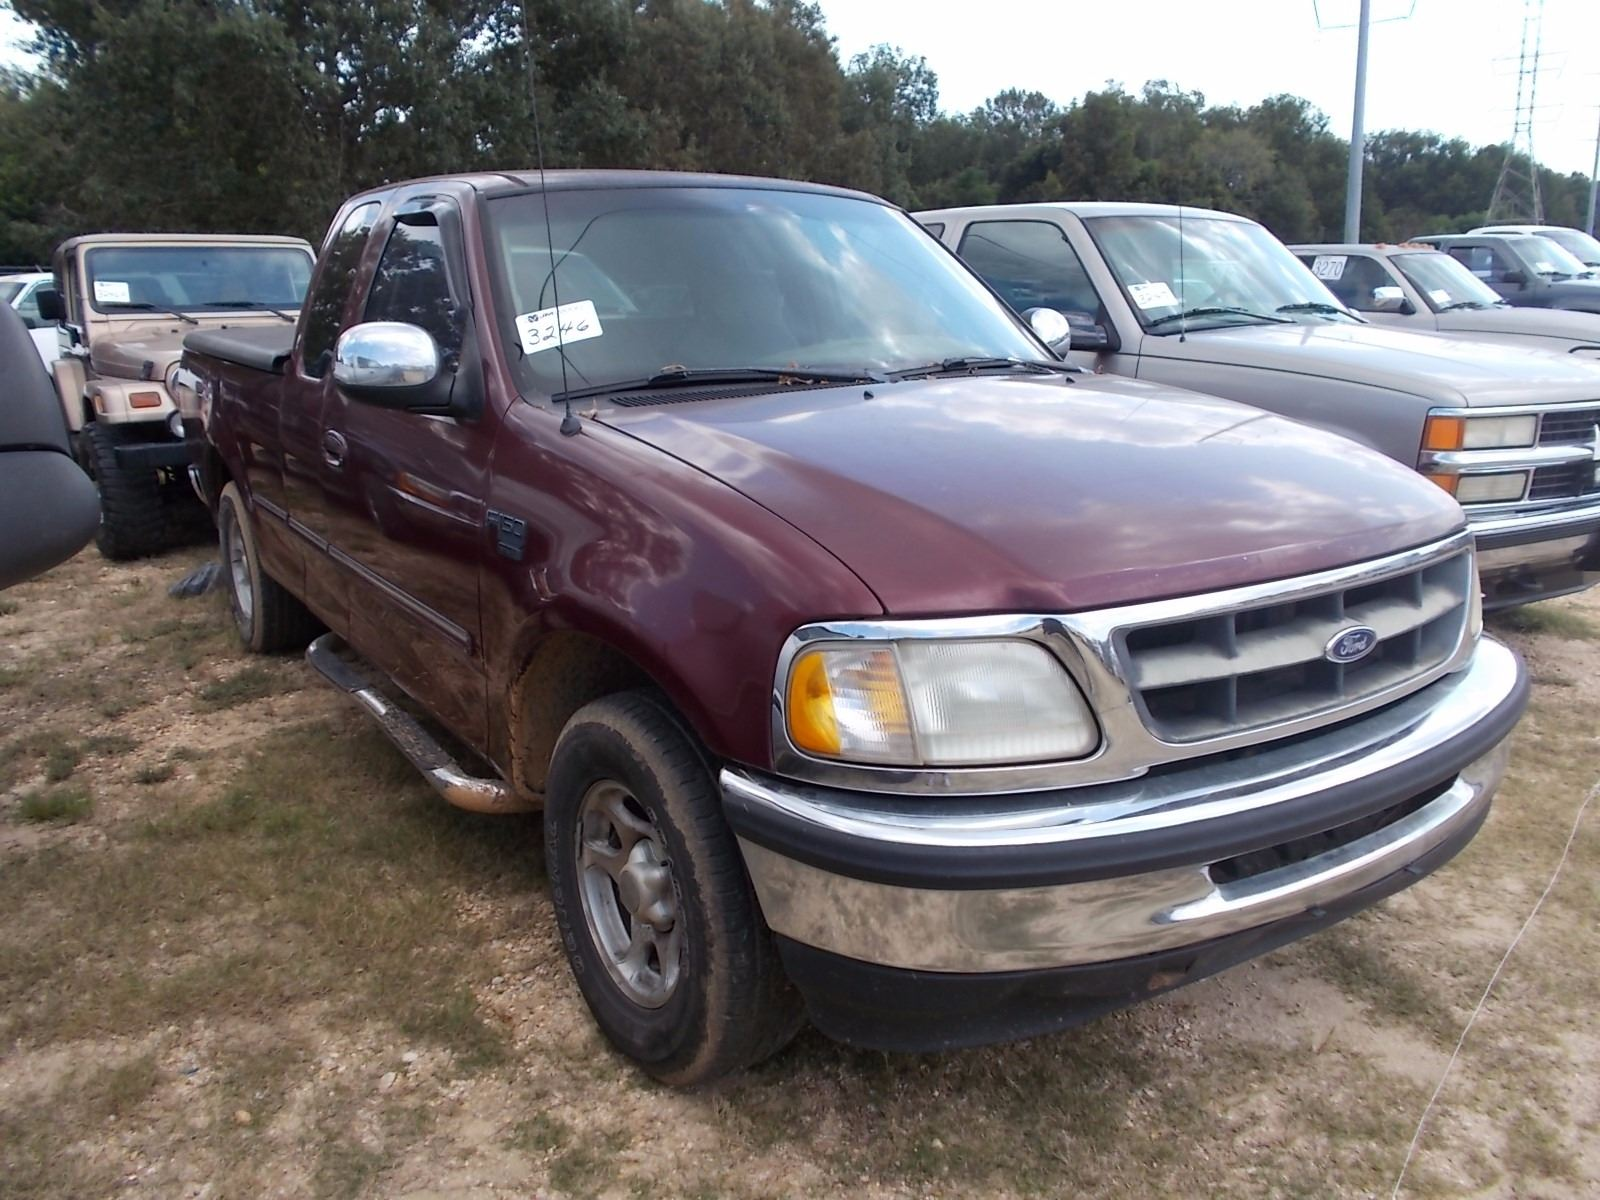 1998 Ford F150 Pickup  Vin  Sn 1ftzx17w9wnc05864